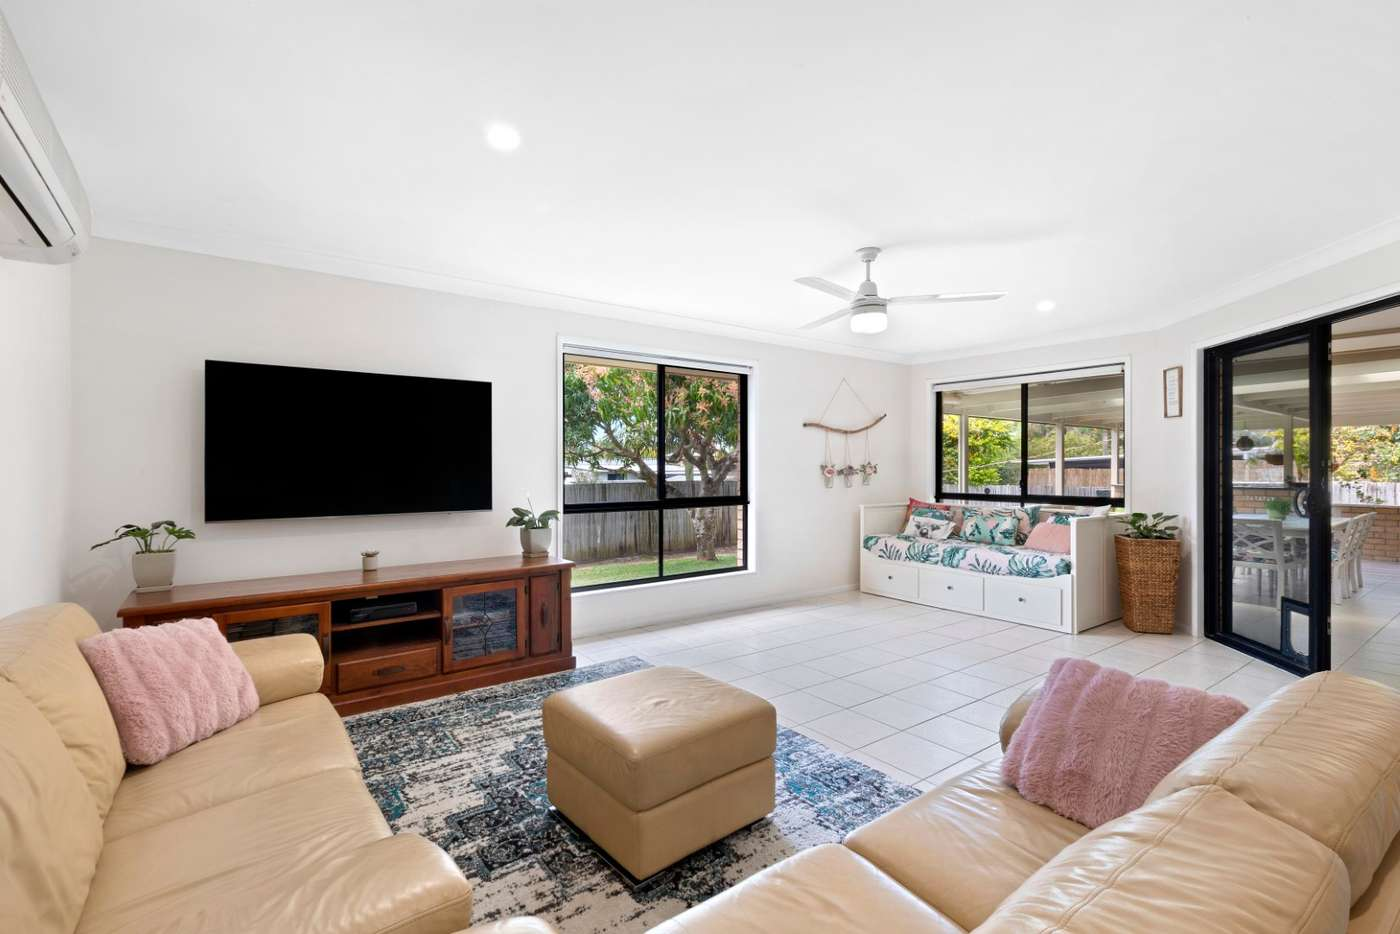 Fifth view of Homely house listing, 15 Discovery Drive, Little Mountain QLD 4551